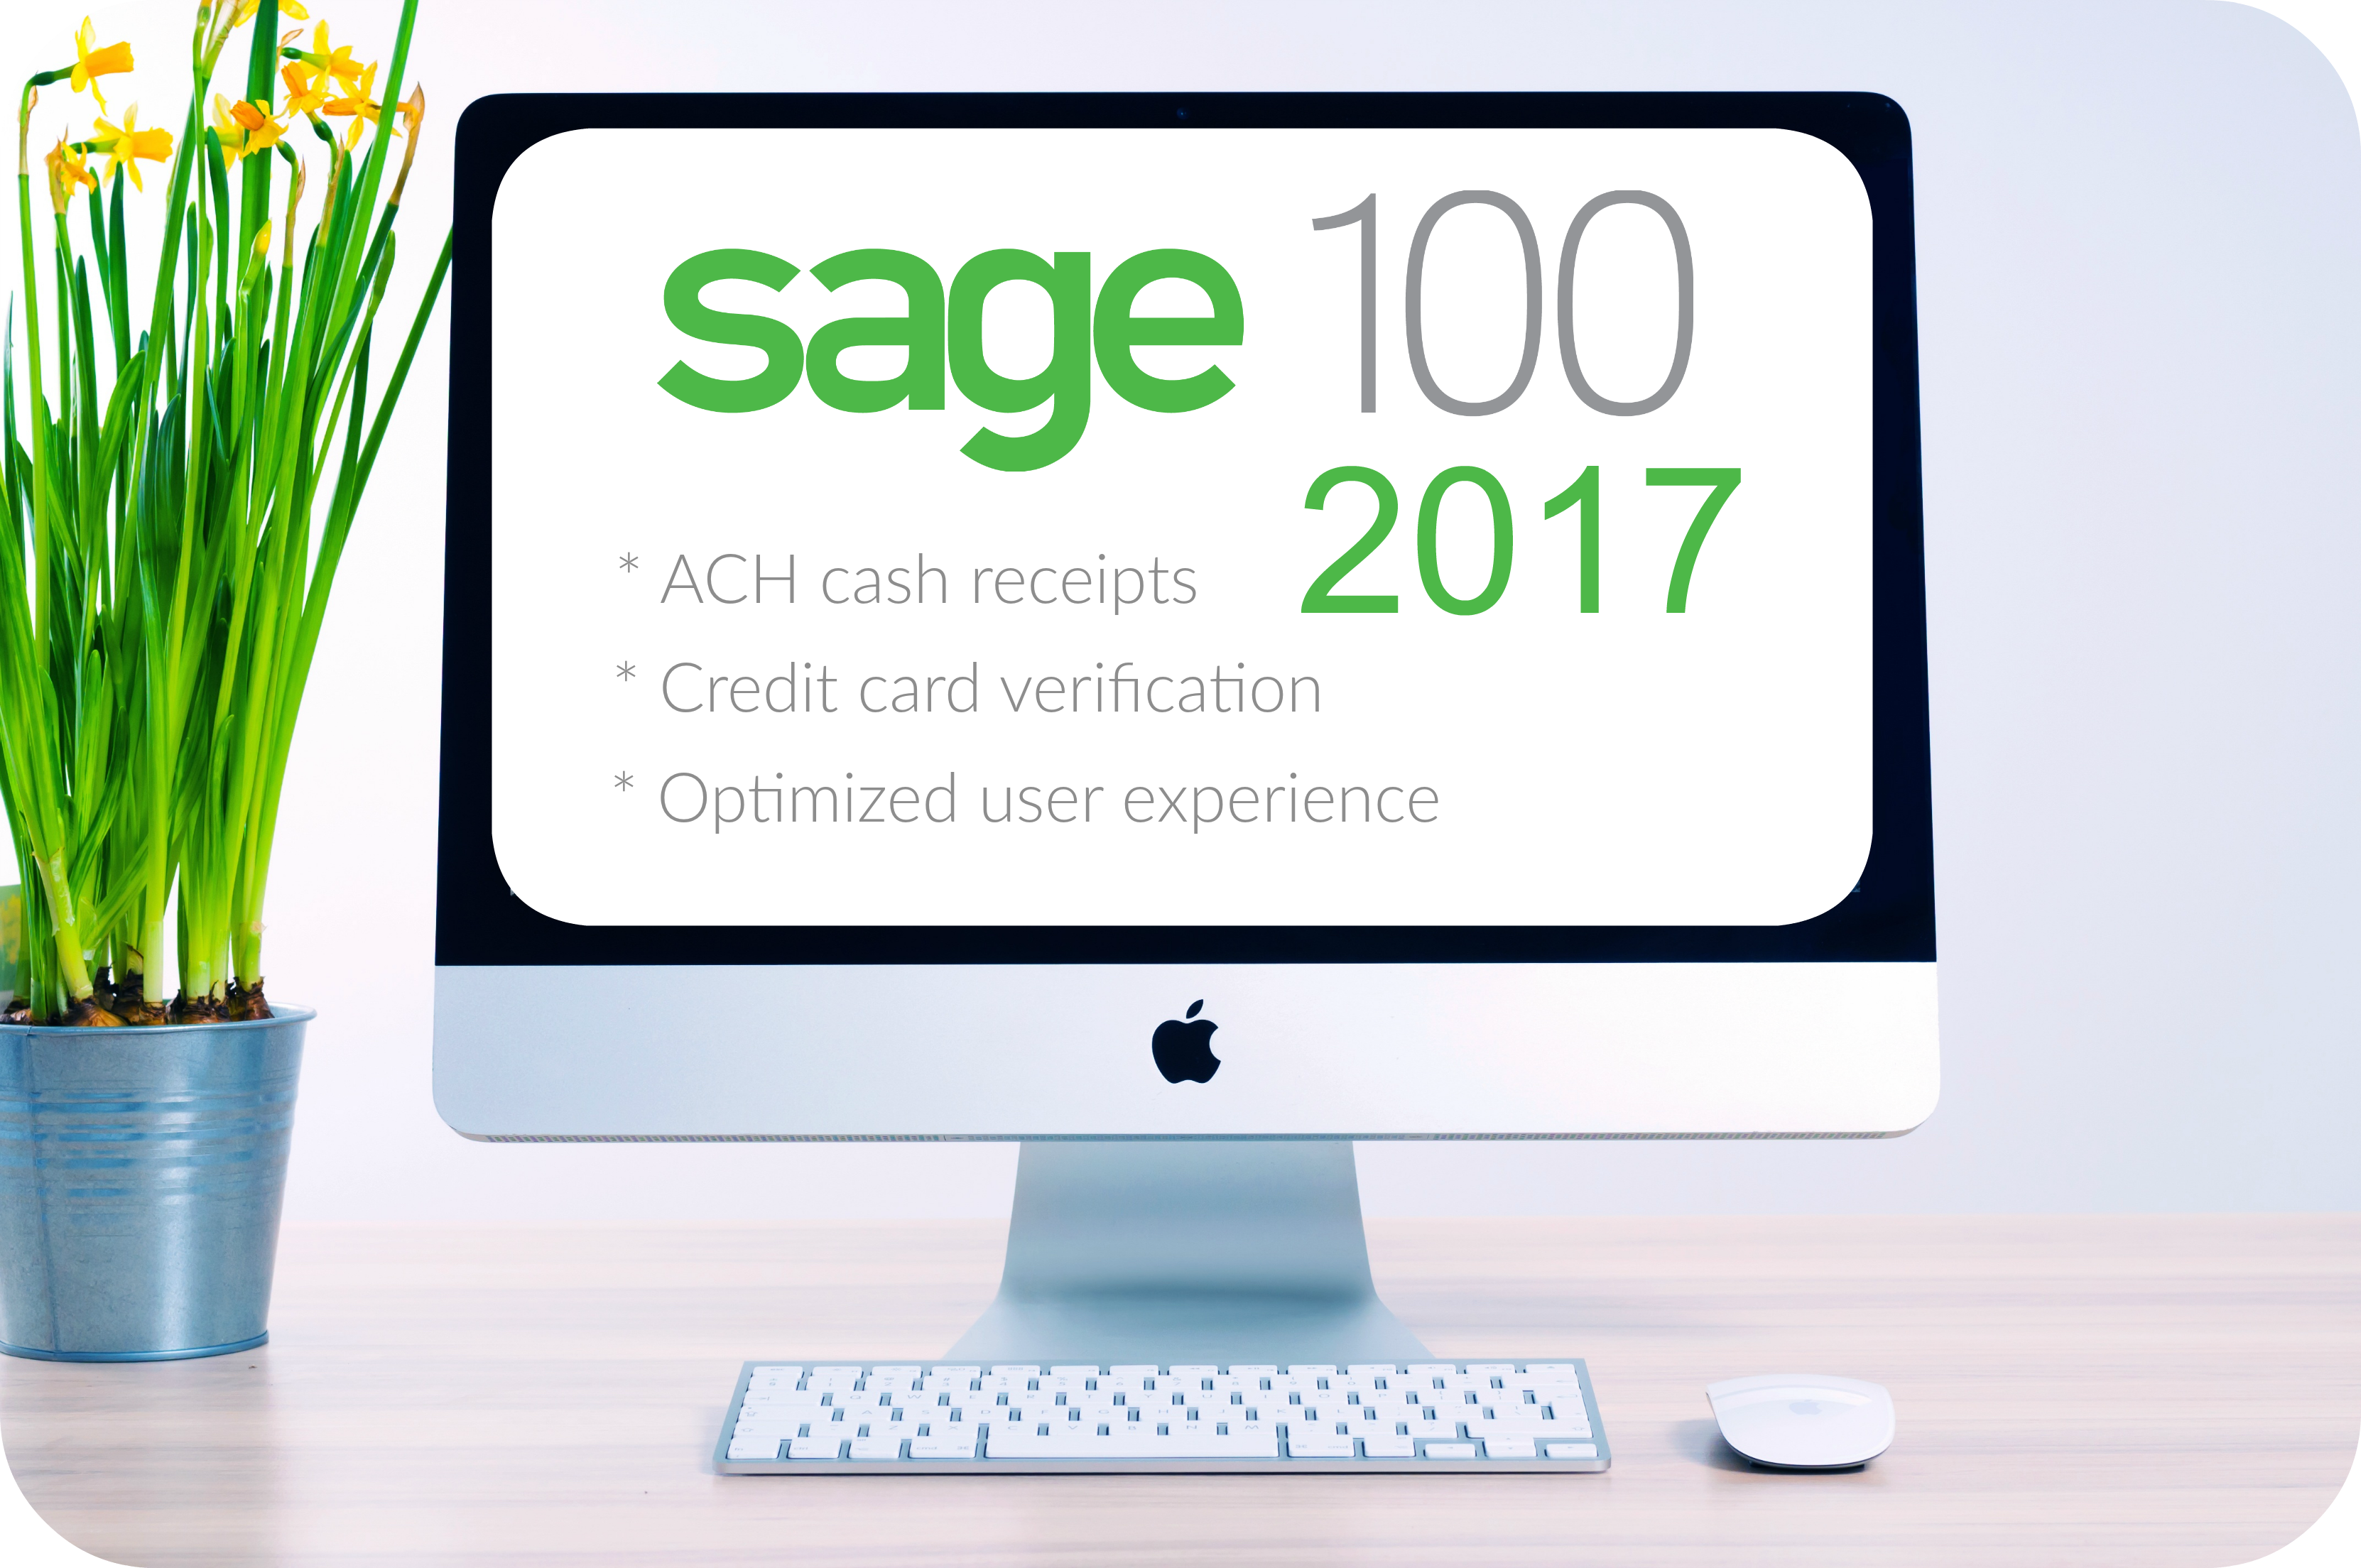 What's new in Sage 100 ERP 2017